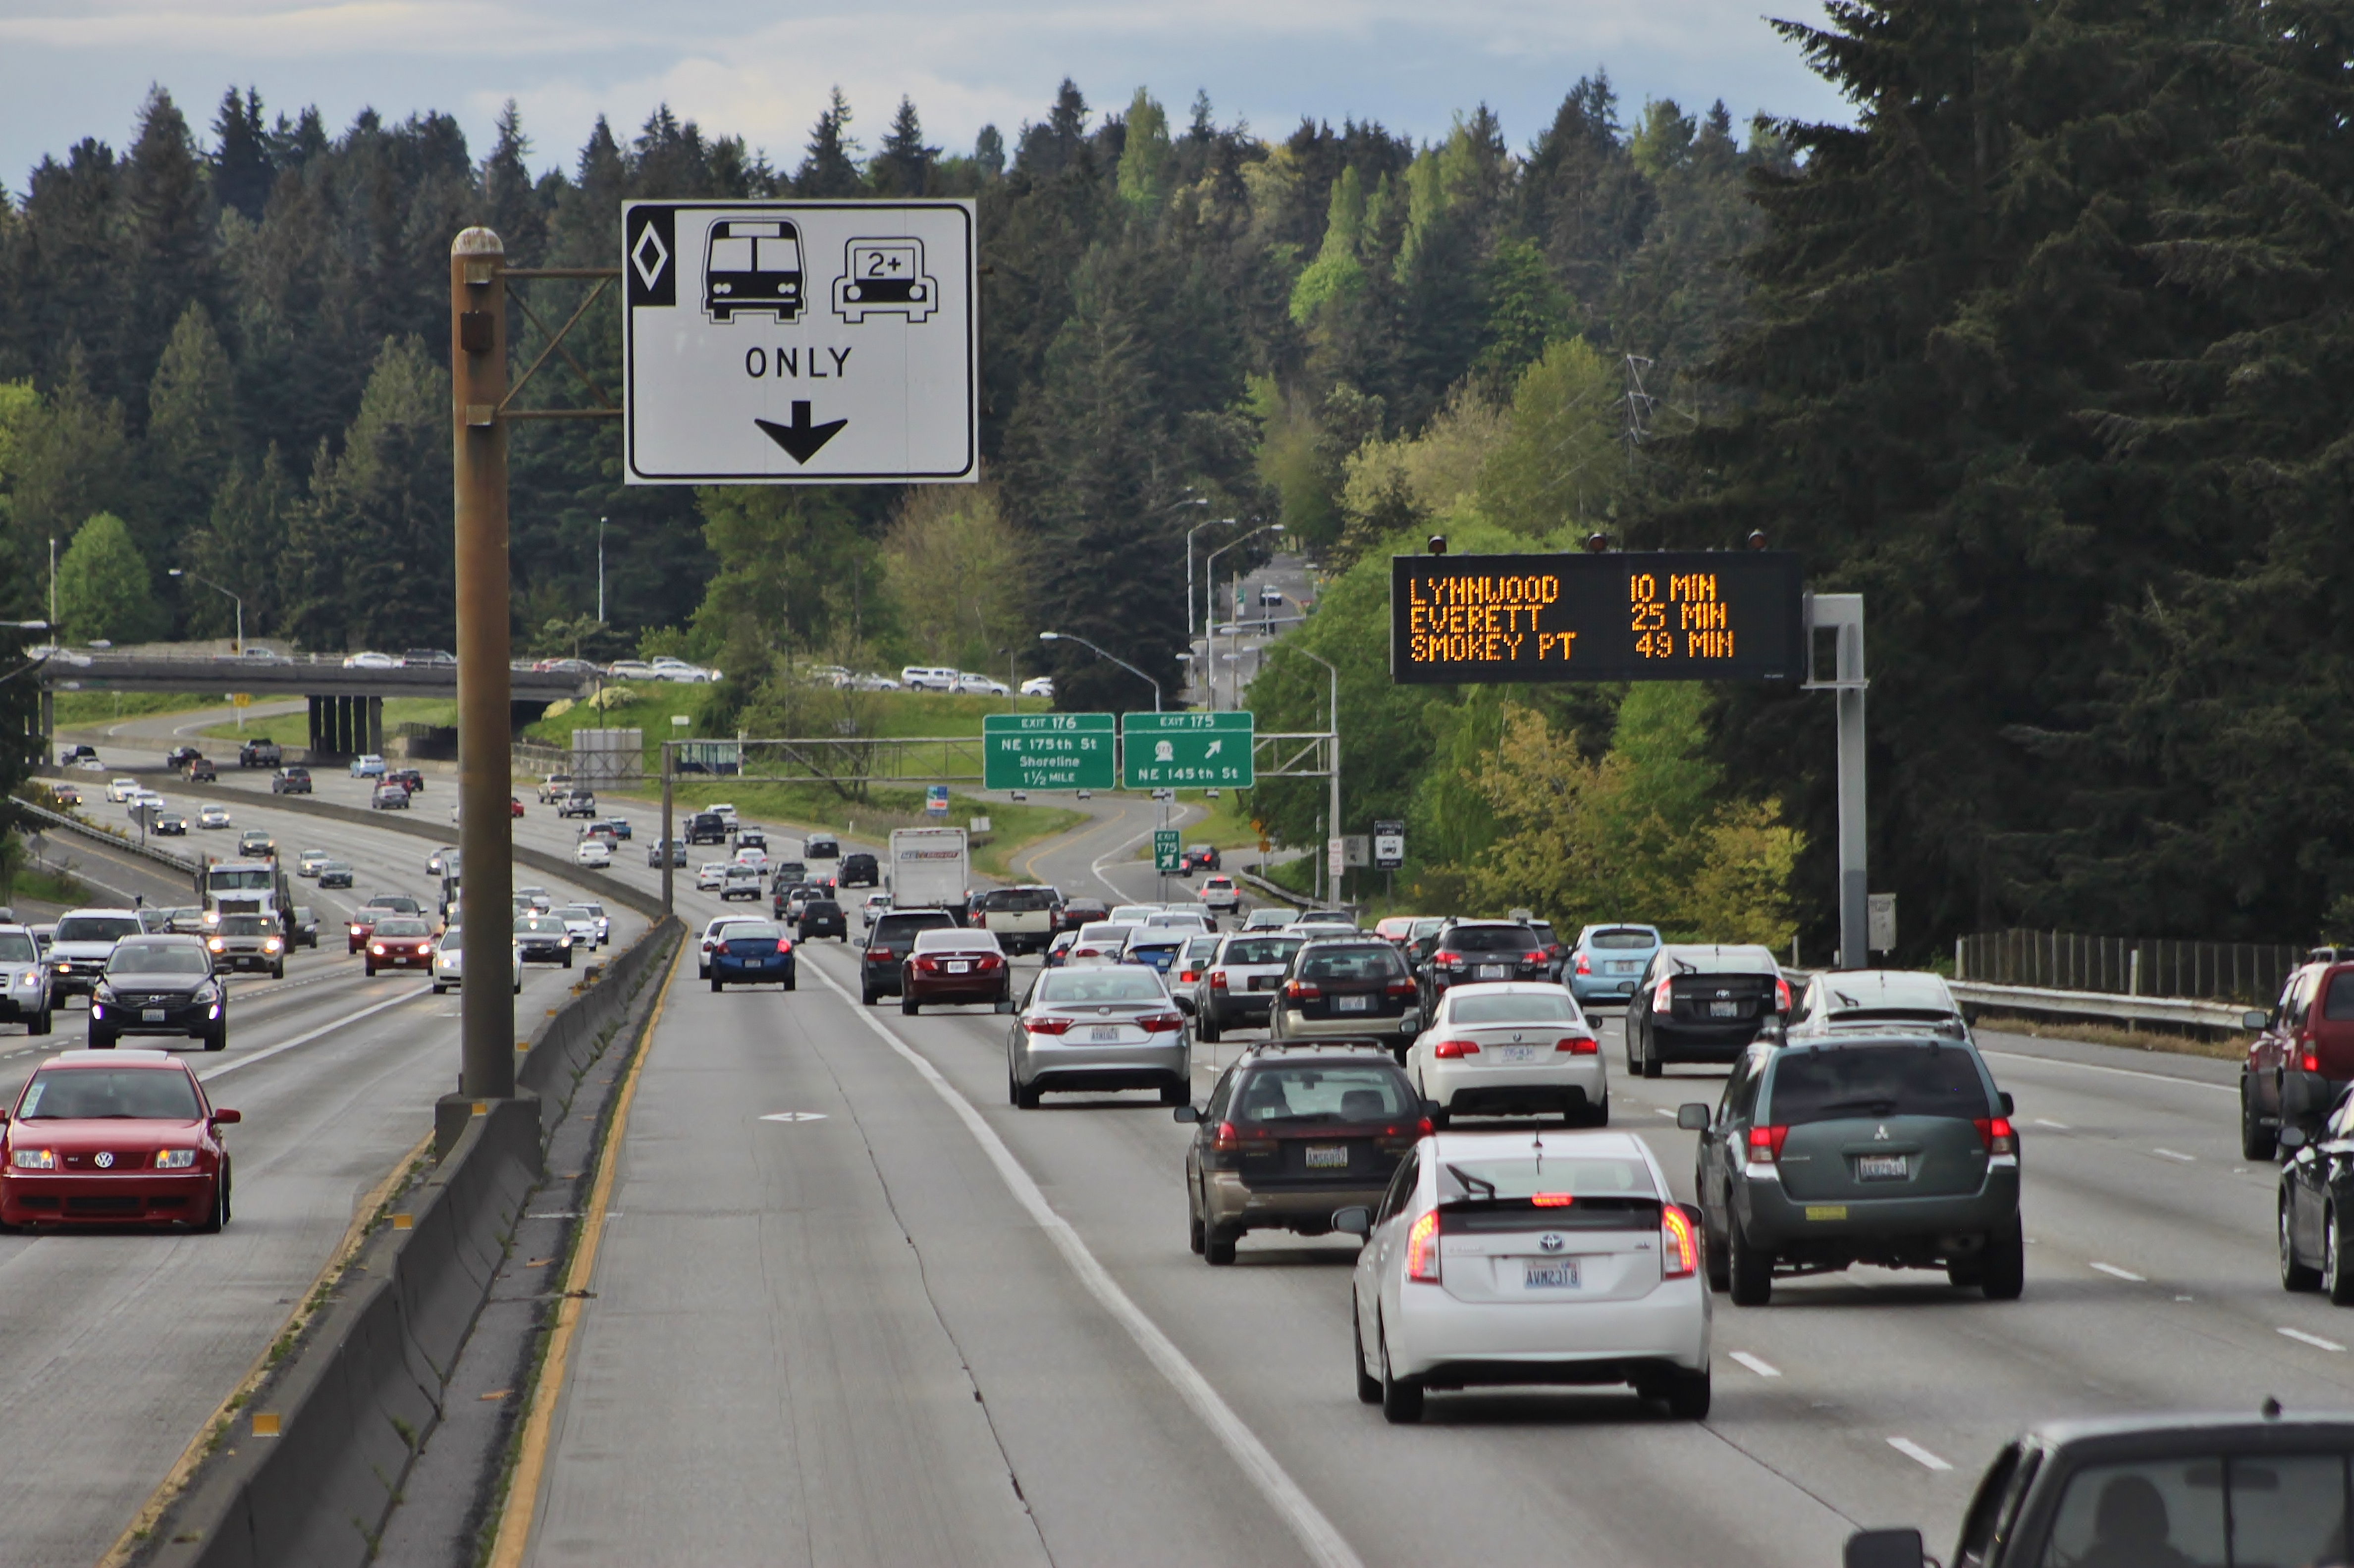 Carpool Lane Rules >> High Occupancy Vehicle Gpedia Your Encyclopedia